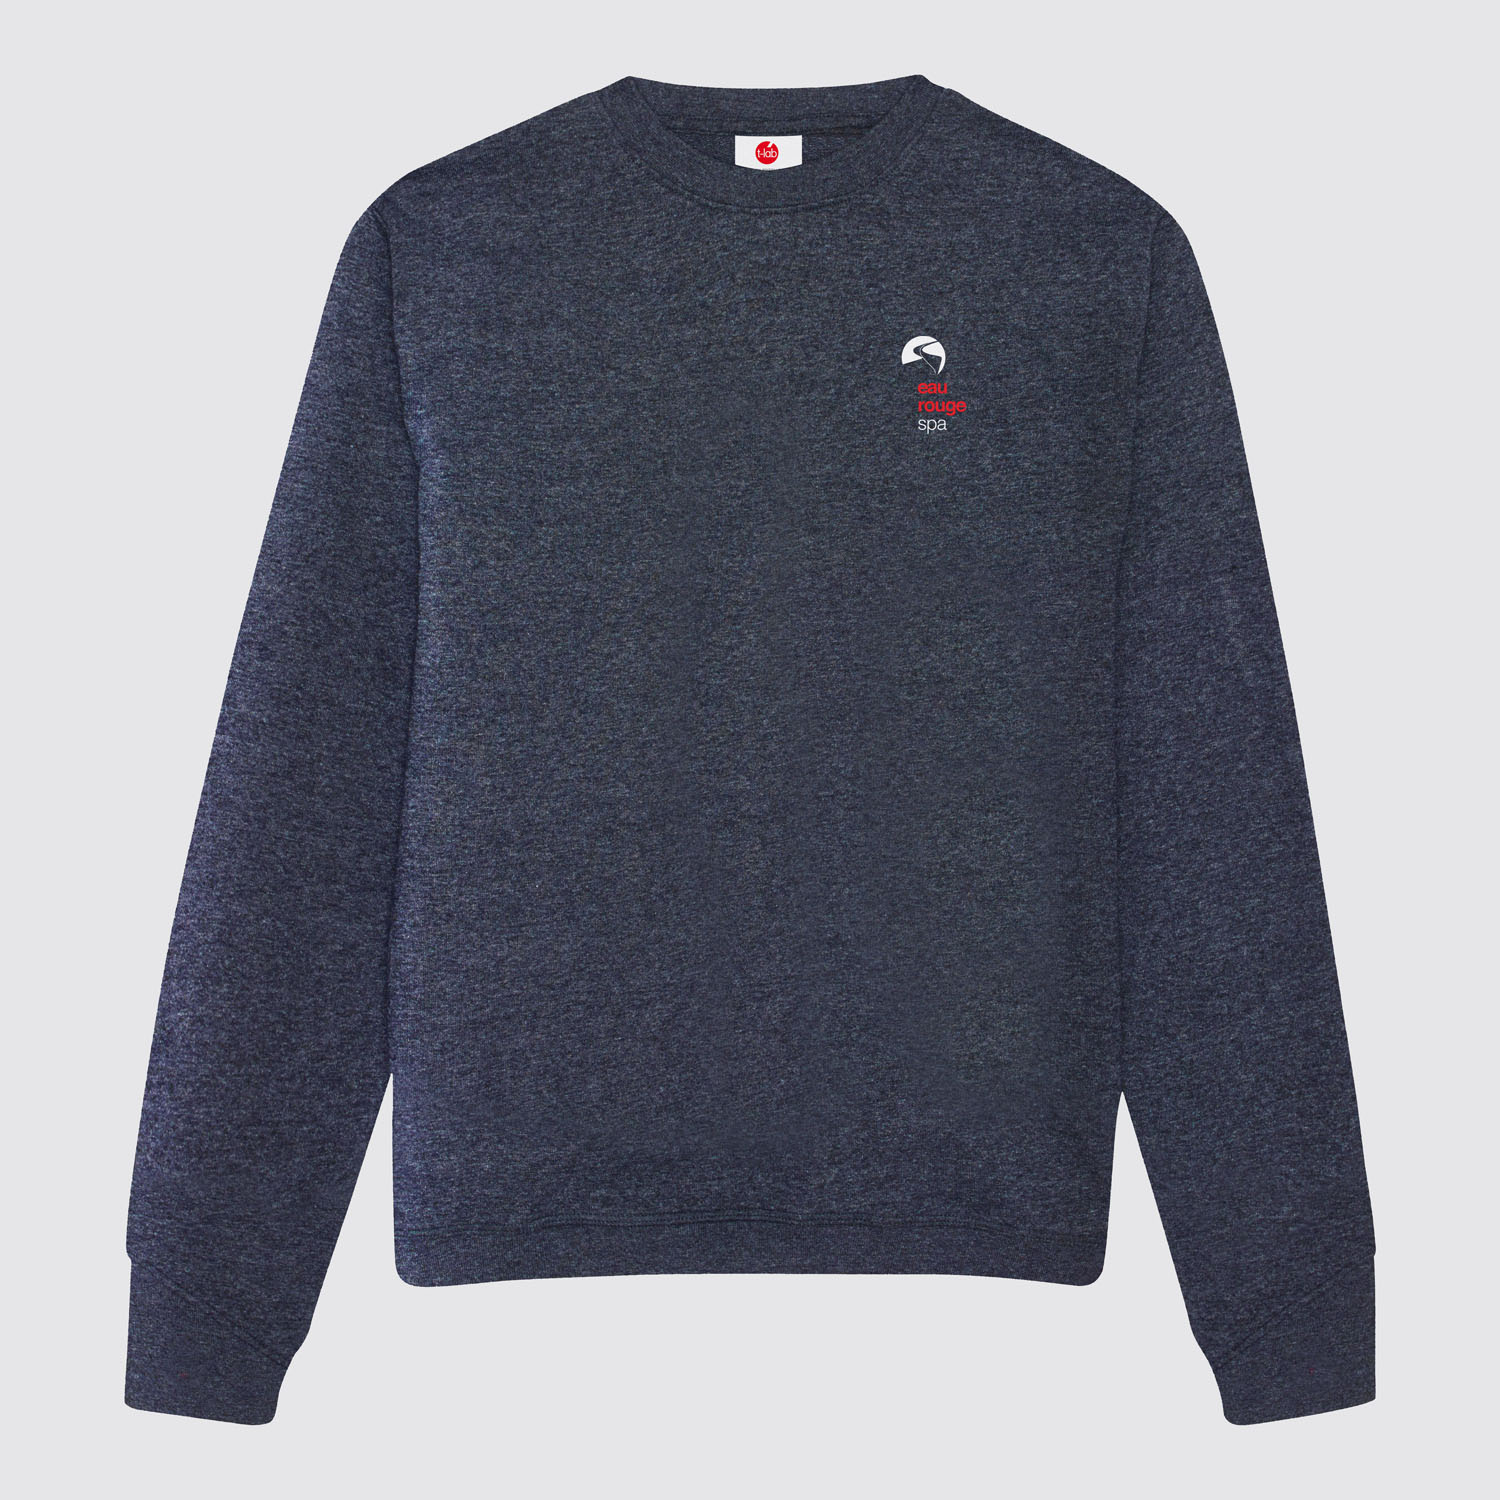 T-lab-Eau-Rouge-mens-sweatshirt-